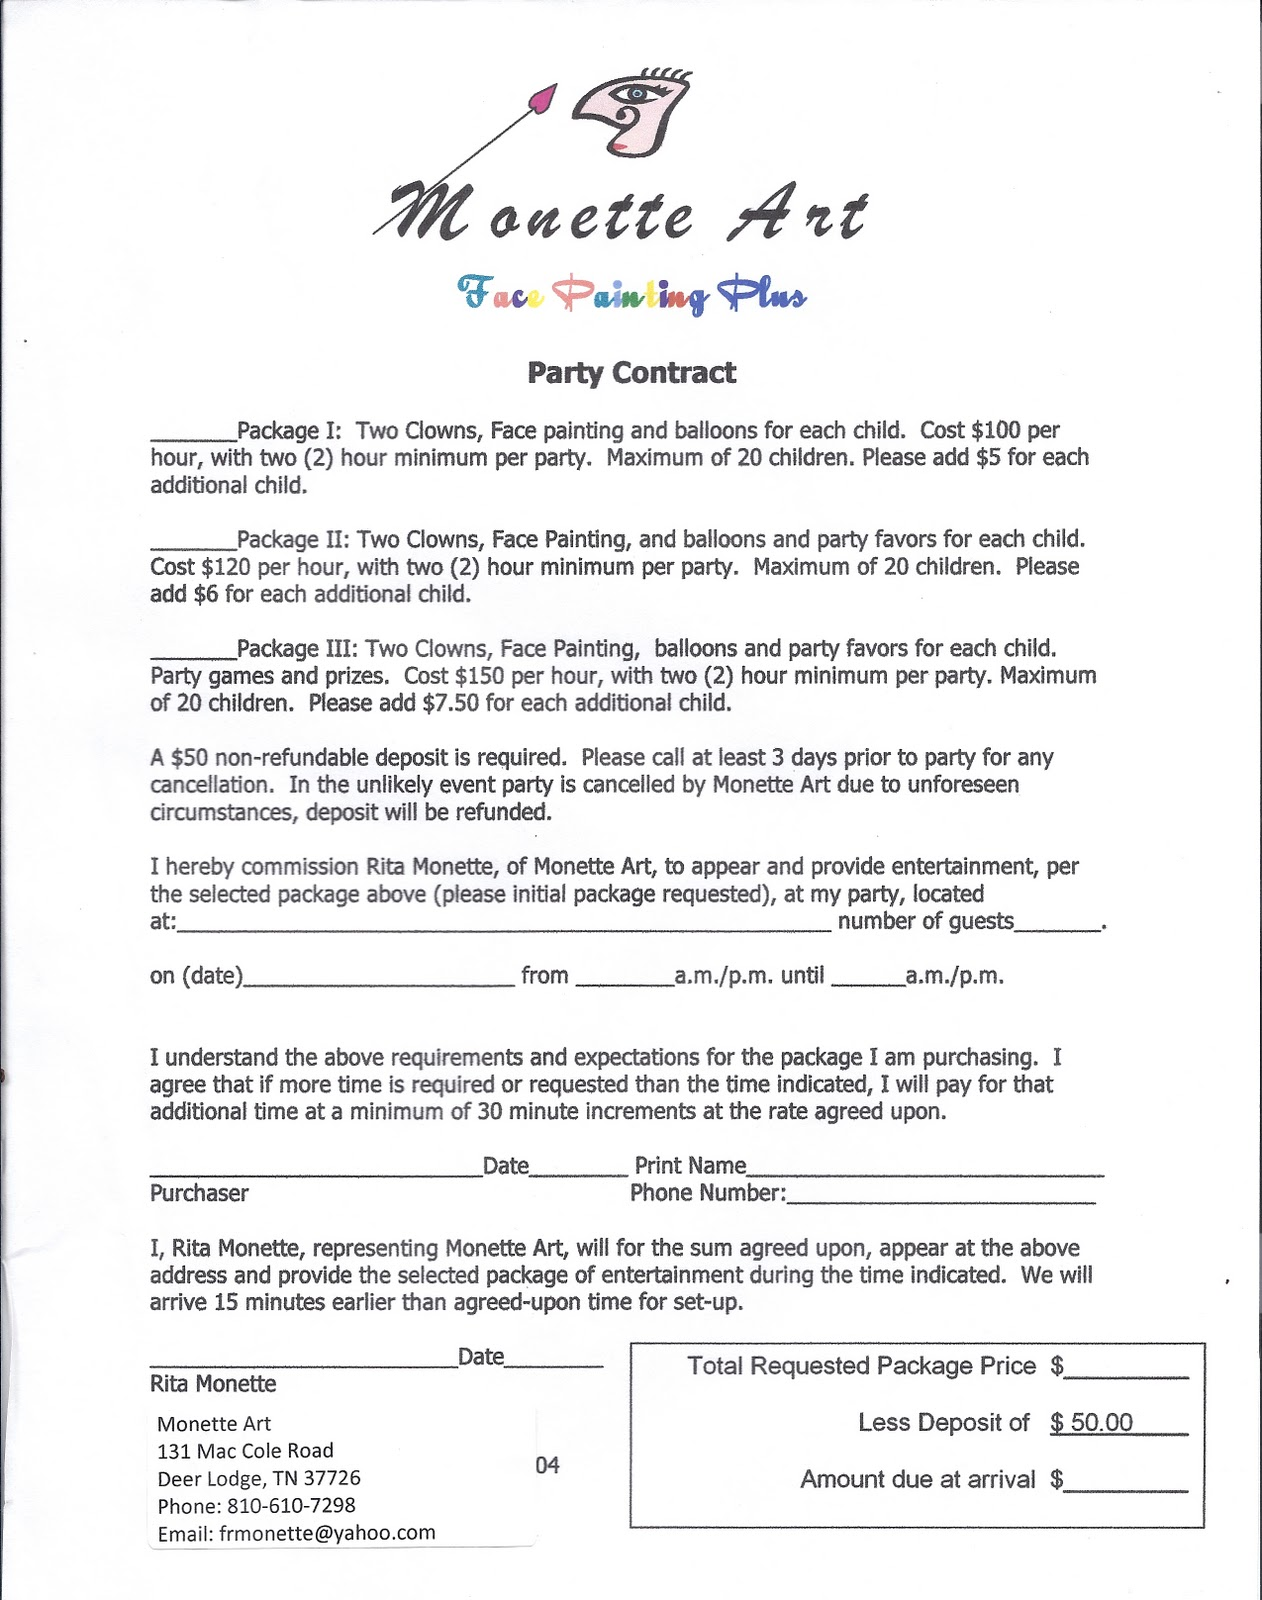 Face Painting Plus Show Schedule And Reviews Party Contract